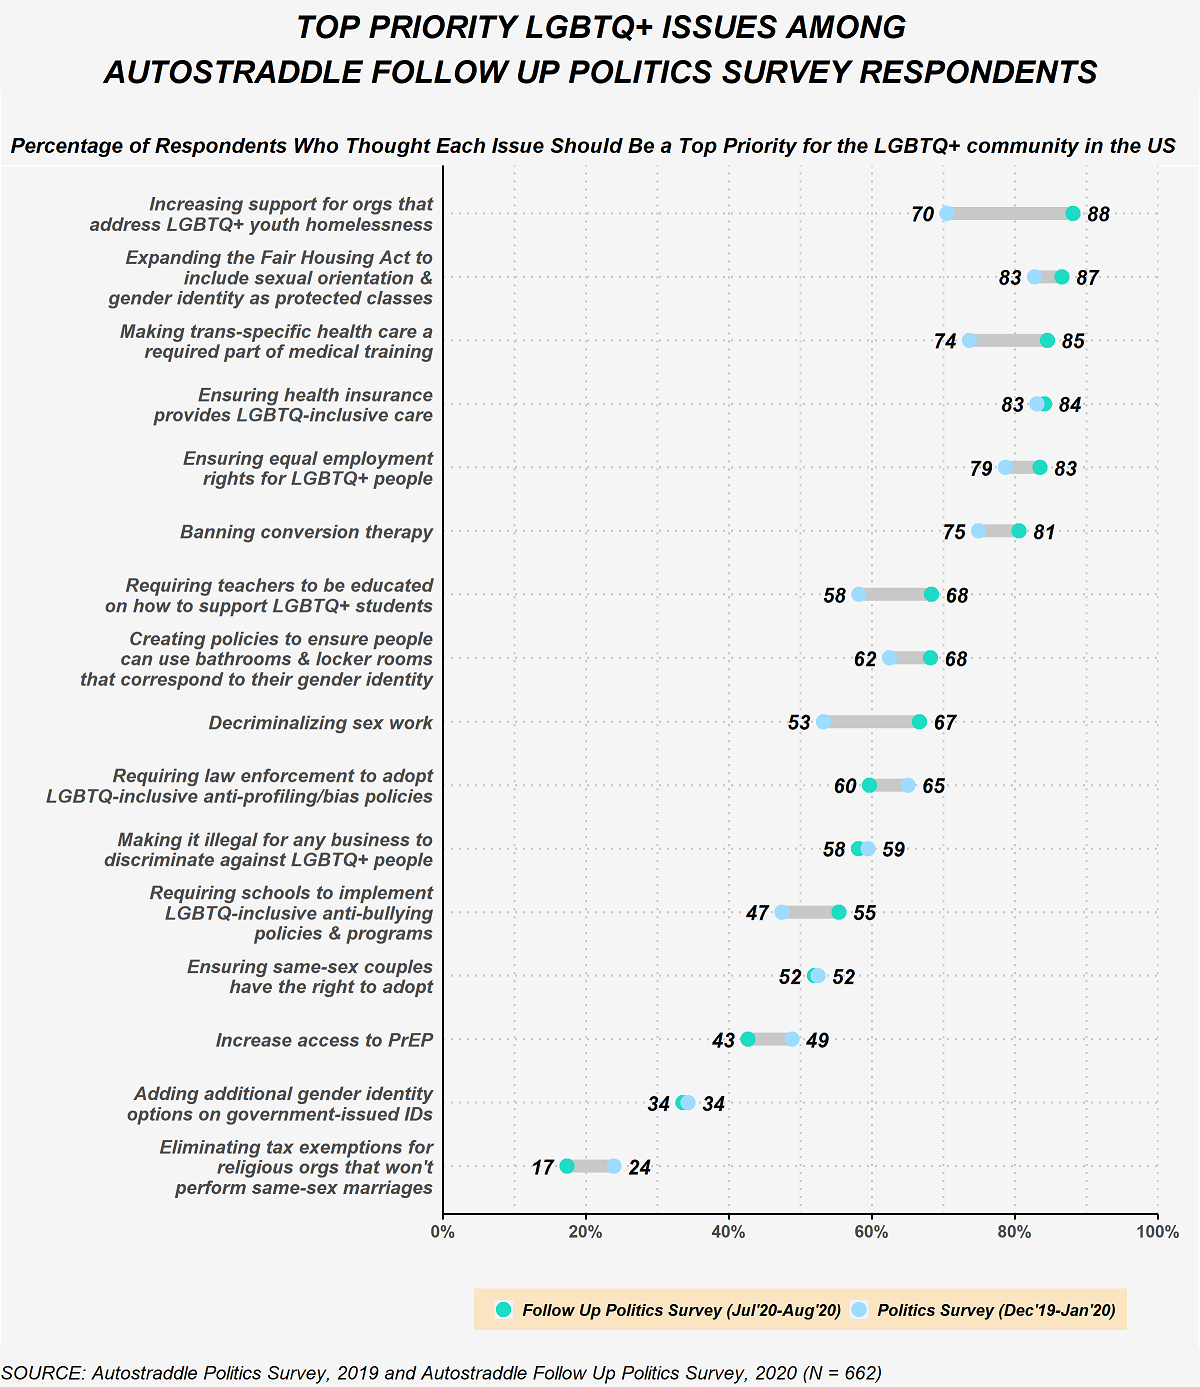 This figure compares the percent of Follow Up Survey respondents who selected each of the following LGBTQ+ issues as a top priority for the LGBTQ+ community in the U.S on the Politics Survey (in December 2019 through January 2020) and on the Follow Up Politics Survey (in July 2020 through August 2020). On the Follow Up Politics Survey 88% selected increasing support for organizations that address LGBTQ+ youth homelessness as a top priority issue compared to 70% on the earlier Politics Survey. On the Follow Up Politics Survey, 87% selected expanding the Fair Housing Act to include sexual orientation and gender identity as protected classes as a top priority issue compared to 83% on the earlier Politics Survey. On the Follow Up Politics Survey 85% selected making trans-specific health care a required part of medical training as a top priority issue compared to 74% on the earlier Politics Survey. On the Follow Up Politics Survey 84% selected ensuring health insurance provides LGBTQ-inclusive care as a top priority issue compared to 83% on the earlier Politics Survey. On the Follow Up Politics Survey 83% selected ensuring equal employment rights for LGBTQ+ people as a top priority issue compared to 79% on the earlier Politics Survey. On the Follow Up Politics Survey 81% selected banning conversion therapy as a top priority issue compared to 75% on the earlier Politics Survey. On the Follow Up Politics Survey 68% selected requiring teachers to be educated on how to support LGBTQ+ students as a top priority issue compared to 58% on the earlier Politics Survey. On the Follow Up Politics Survey 68% selected creating policies to ensure people can use bathrooms and locker rooms that correspond to their gender identity as a top priority issue compared to 62% on the earlier Politics Survey. On the Follow Up Politics Survey 67% selected decriminalizing sex work as a top priority issue compared to 53% on the earlier Politics Survey. On the Follow Up Politics survey 60% selected r